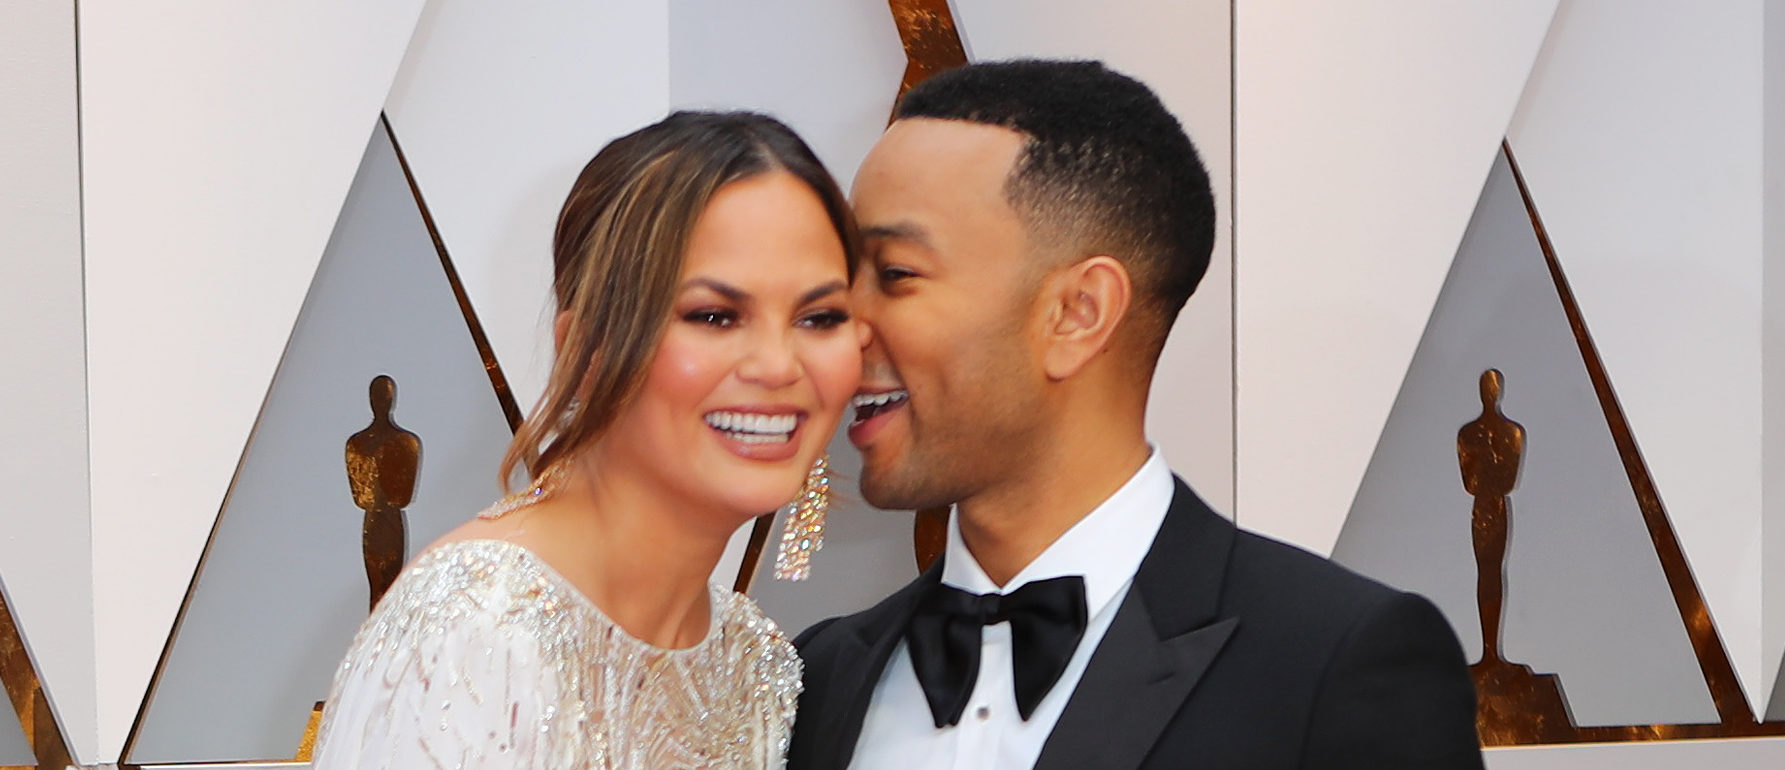 89th Academy Awards - Oscars Red Carpet Arrivals - Hollywood, California, U.S. - 26/02/17 - Chrissy Teigen and John Legend. REUTERS/Mike Blake - HP1ED2R01YQUN